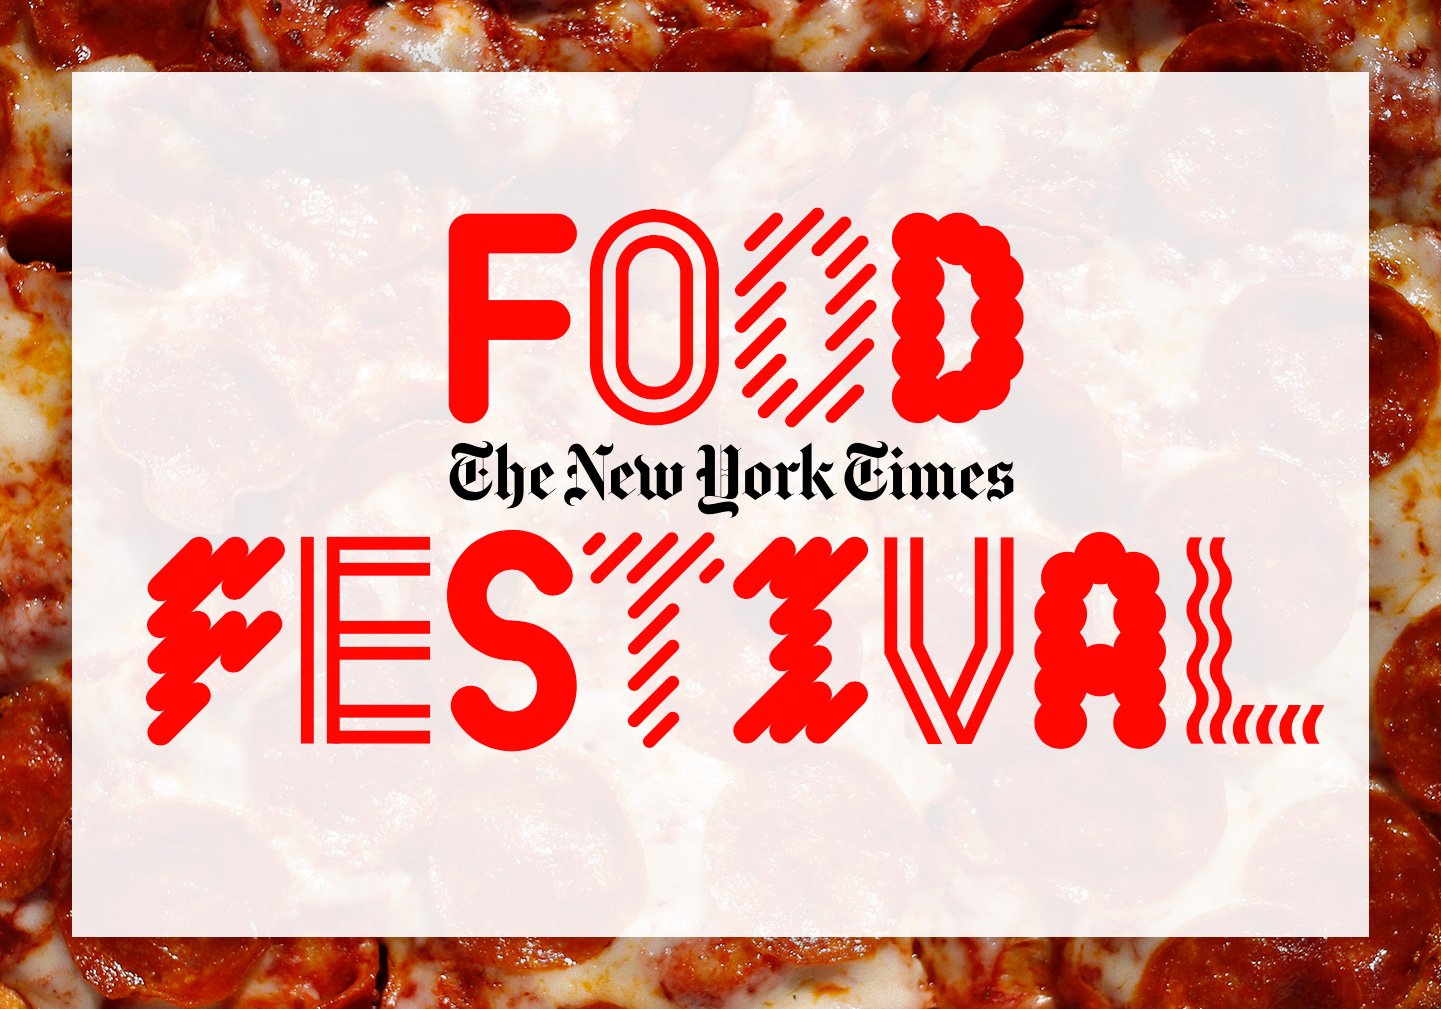 Inaugural NYT Food Festival is a go, with backing from Mastercard, Uber Eats, Bulleit and more